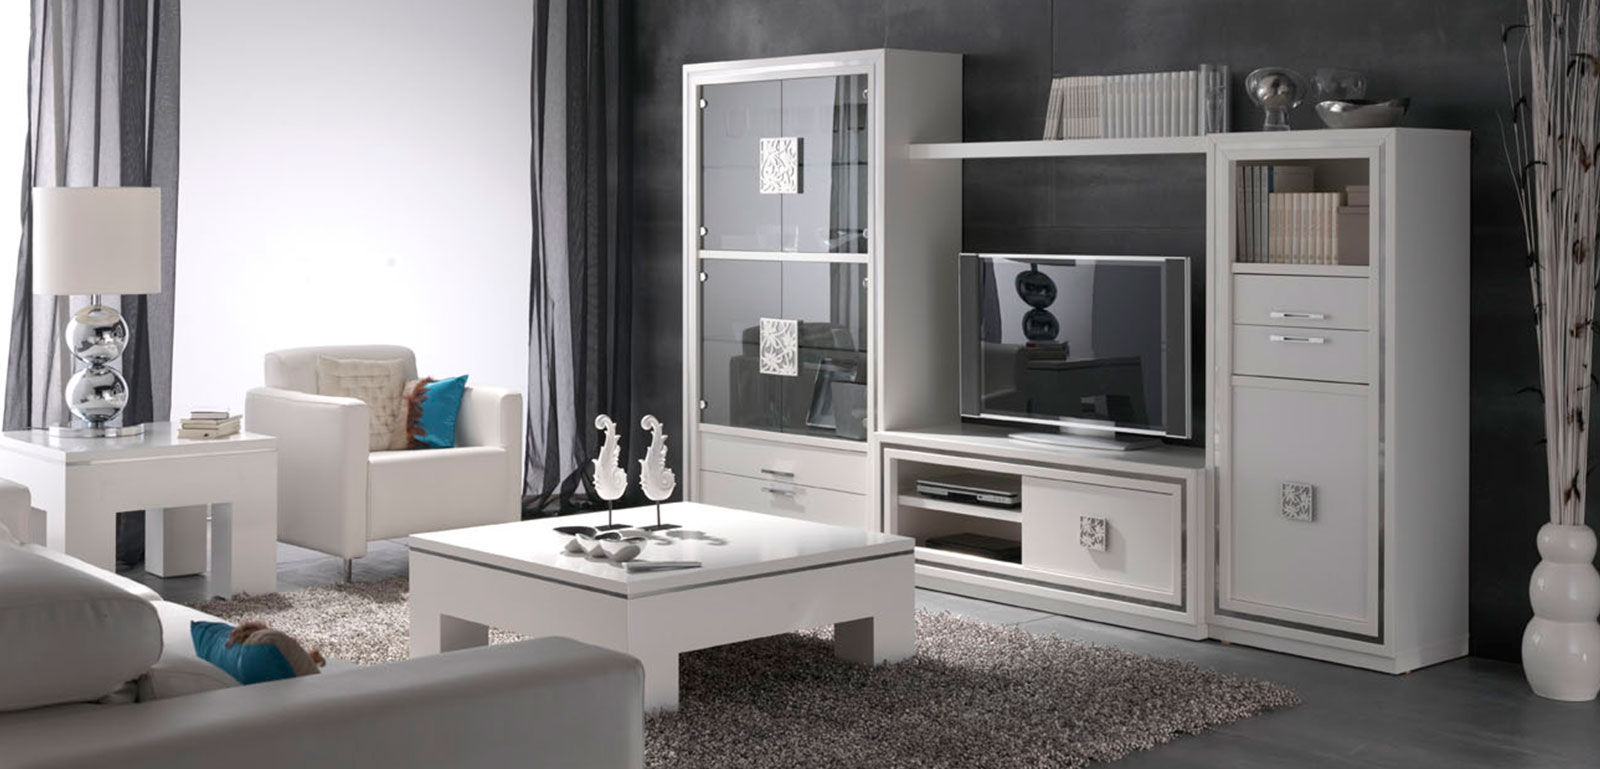 Muebles-para-salon-Nilo-lacado-blanco